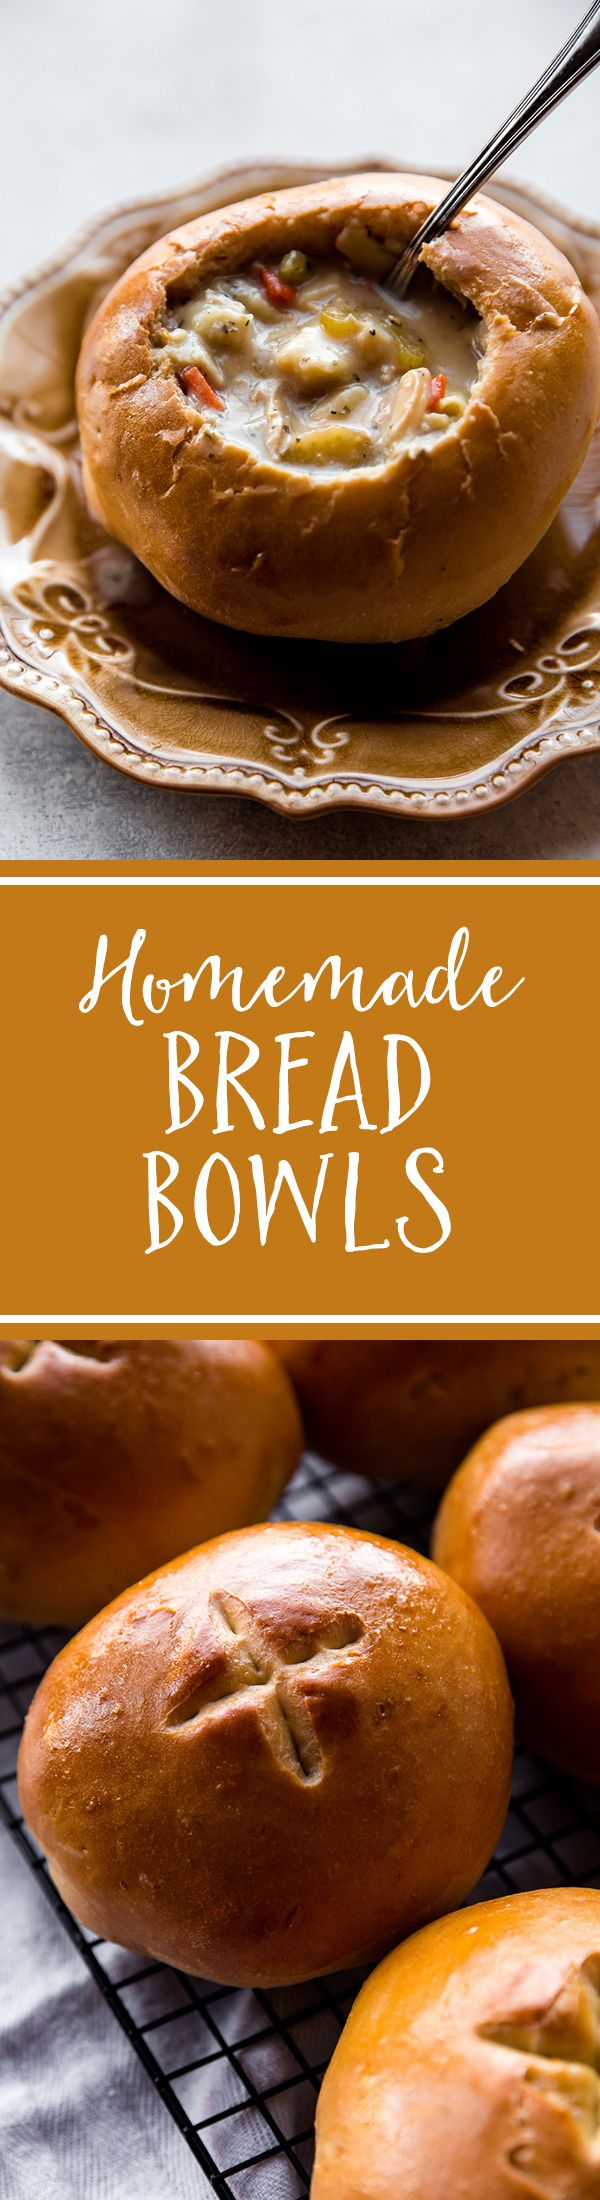 How to make crusty and soft homemade bread bowls with step by step pictures. This is a delicious basic dinner roll recipe you should hold onto! Recipe on sallysbakingaddiction.com